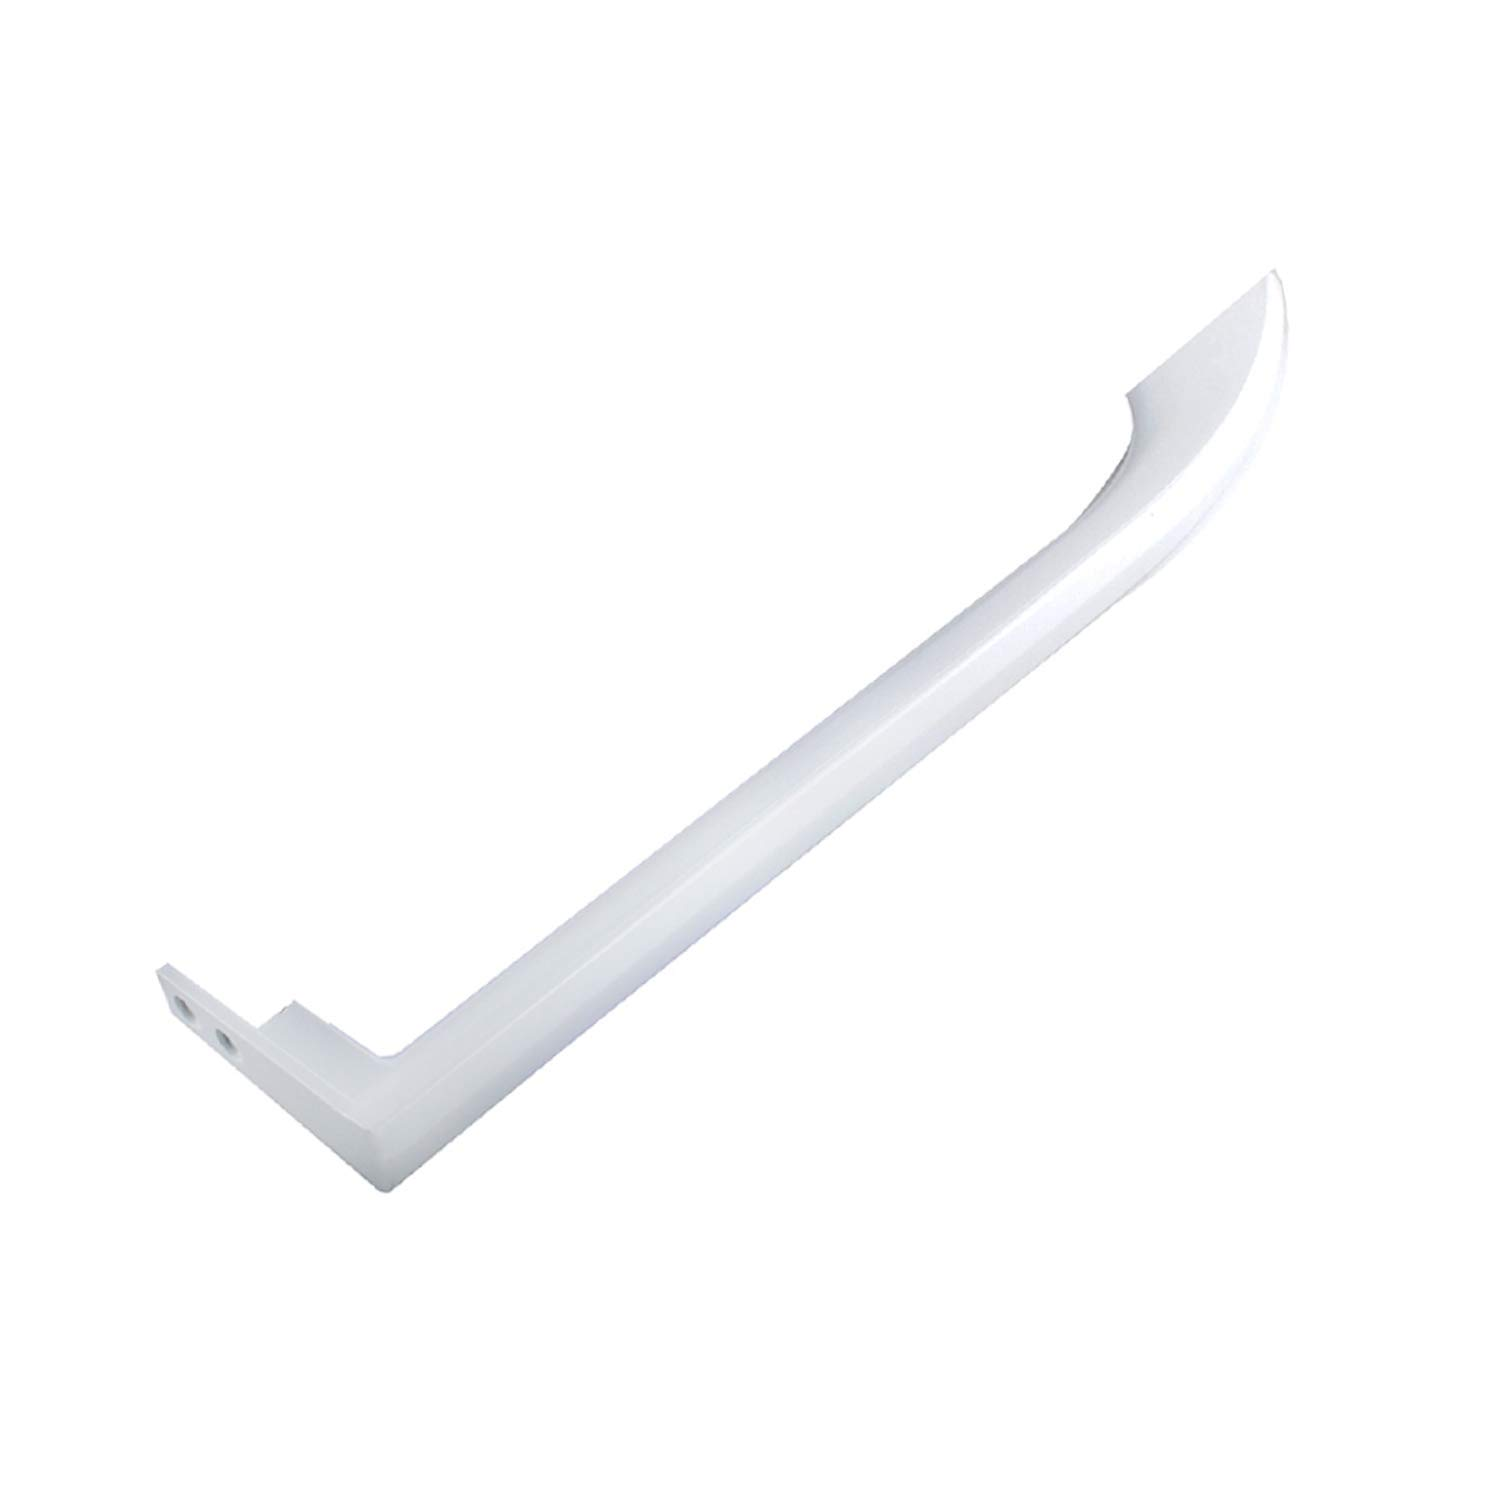 5304506469 Door Handle for Frigidaire Refrigerator Replace 5304504507, 5304486359, 242059501, 242059504, 5304486359(Slope Left)